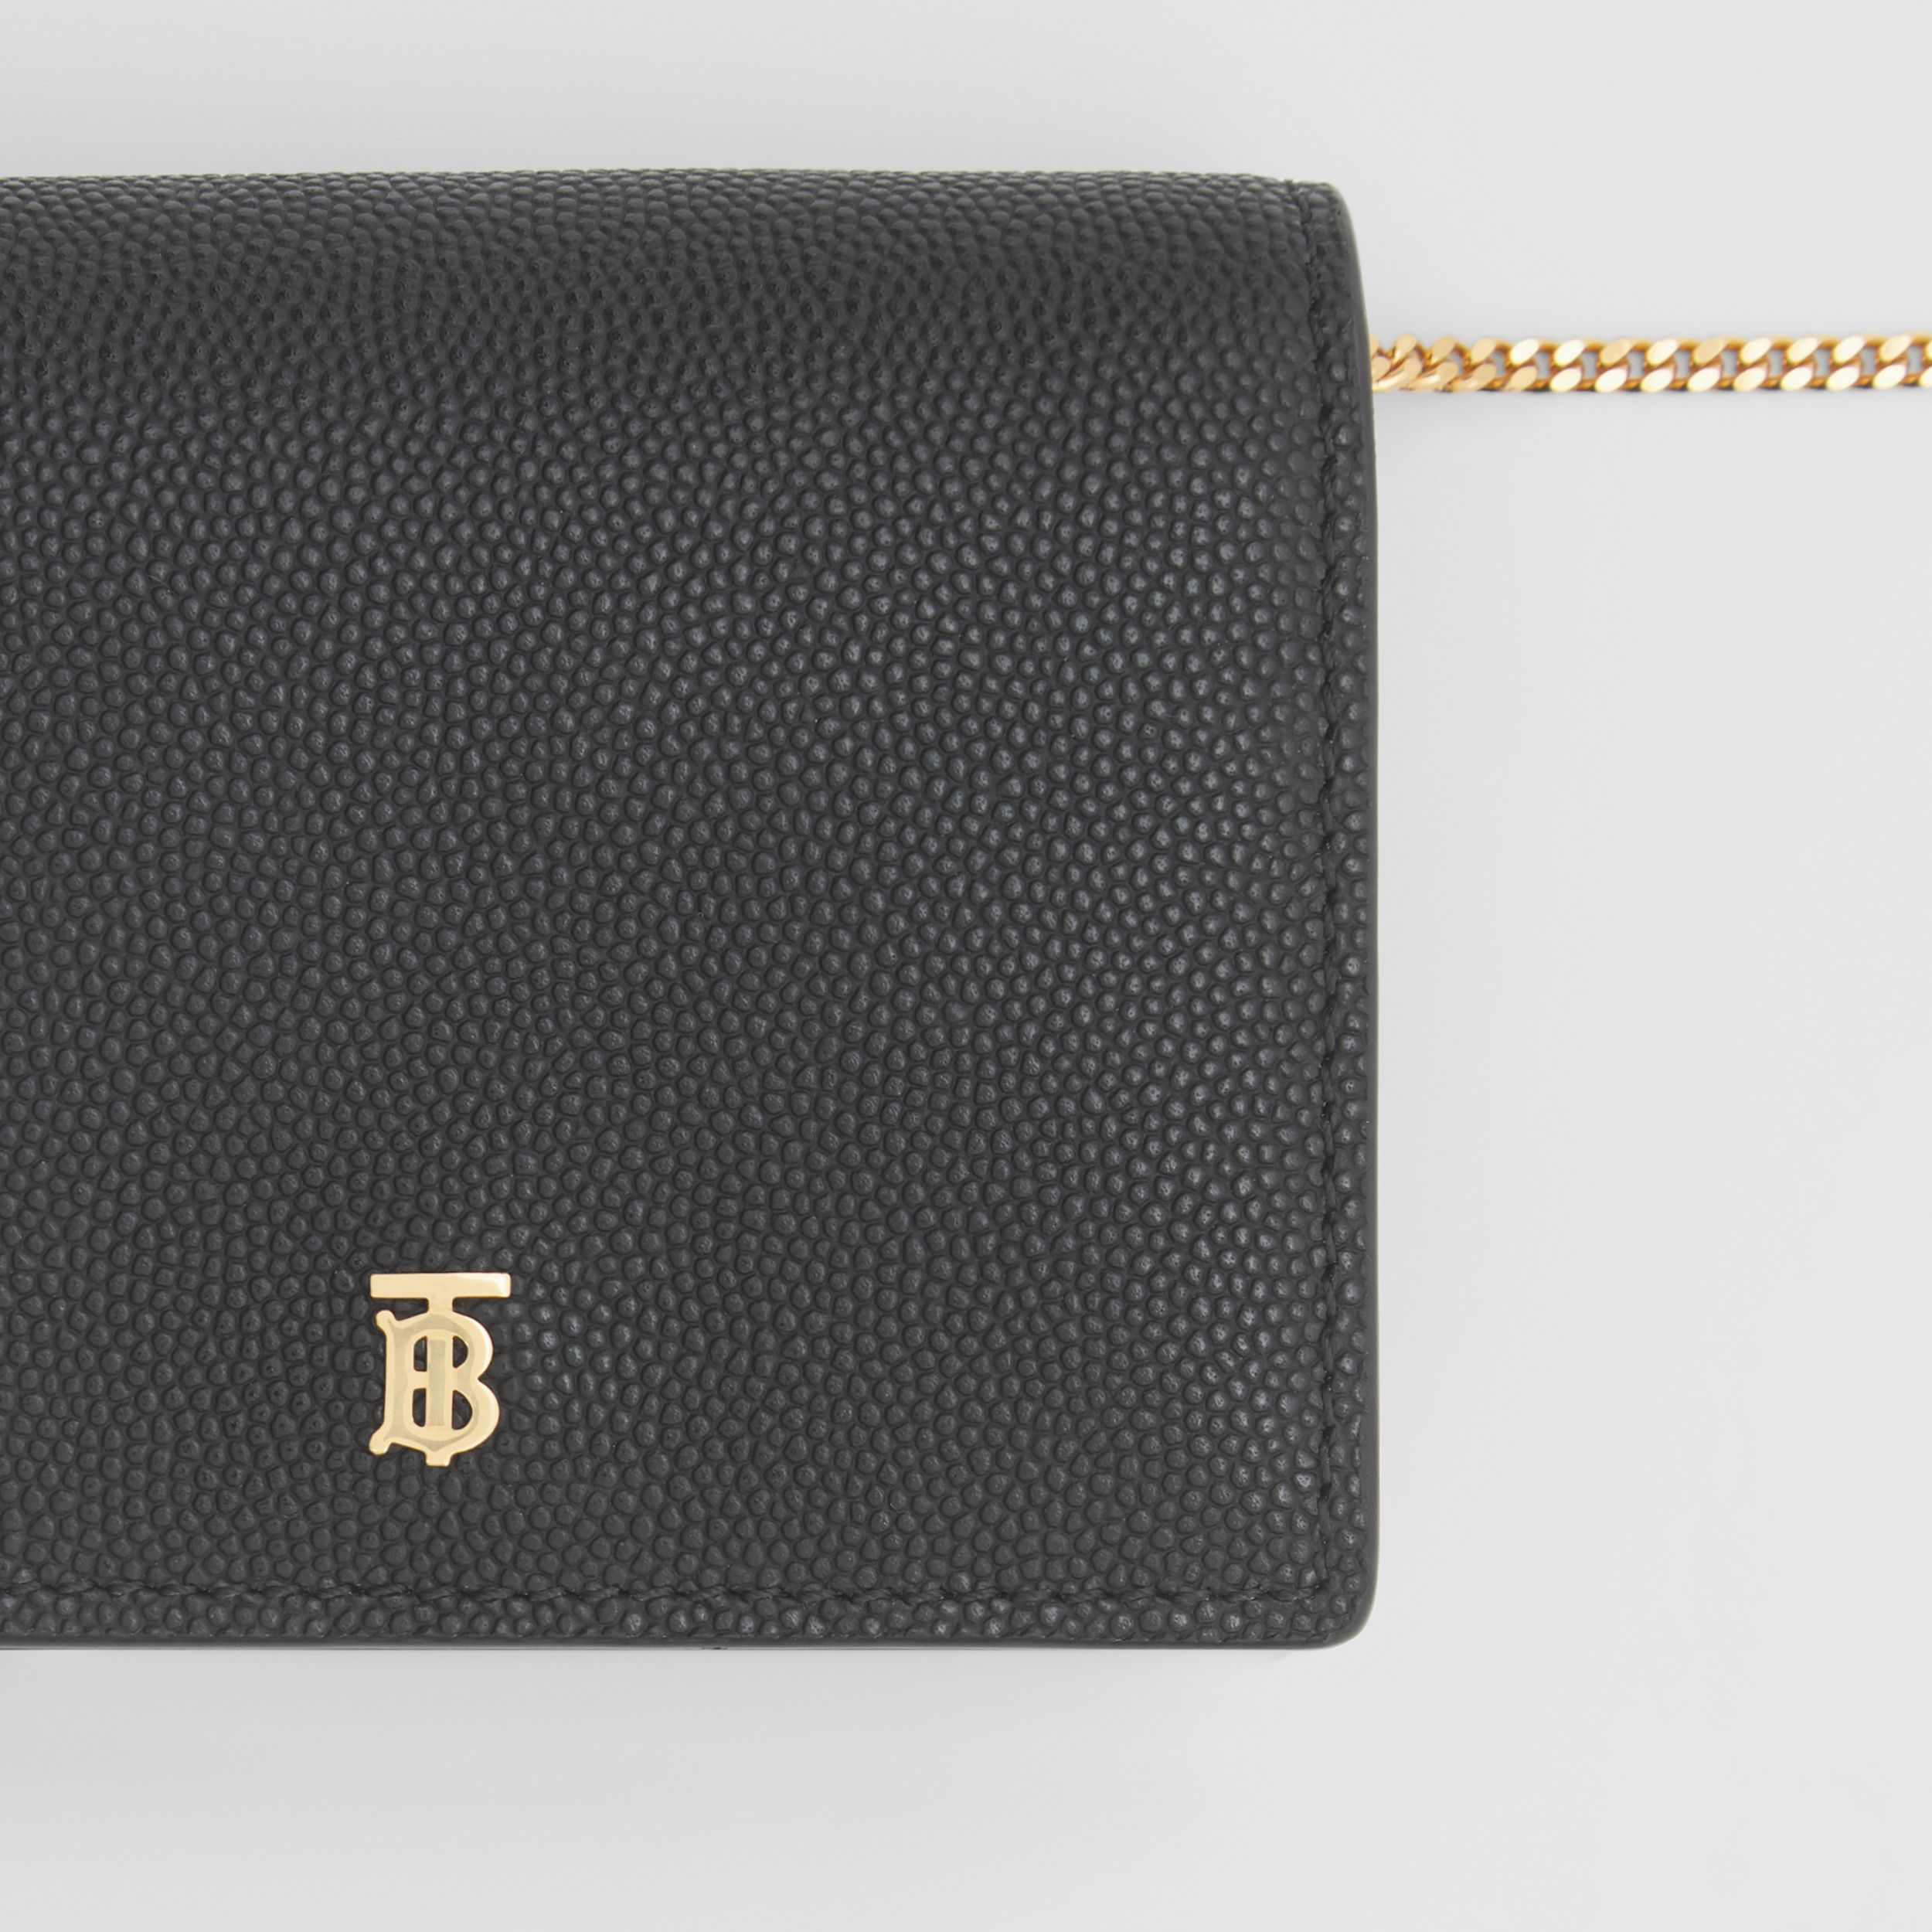 Grainy Leather Card Case with Detachable Strap in Black - Women | Burberry United Kingdom - 2